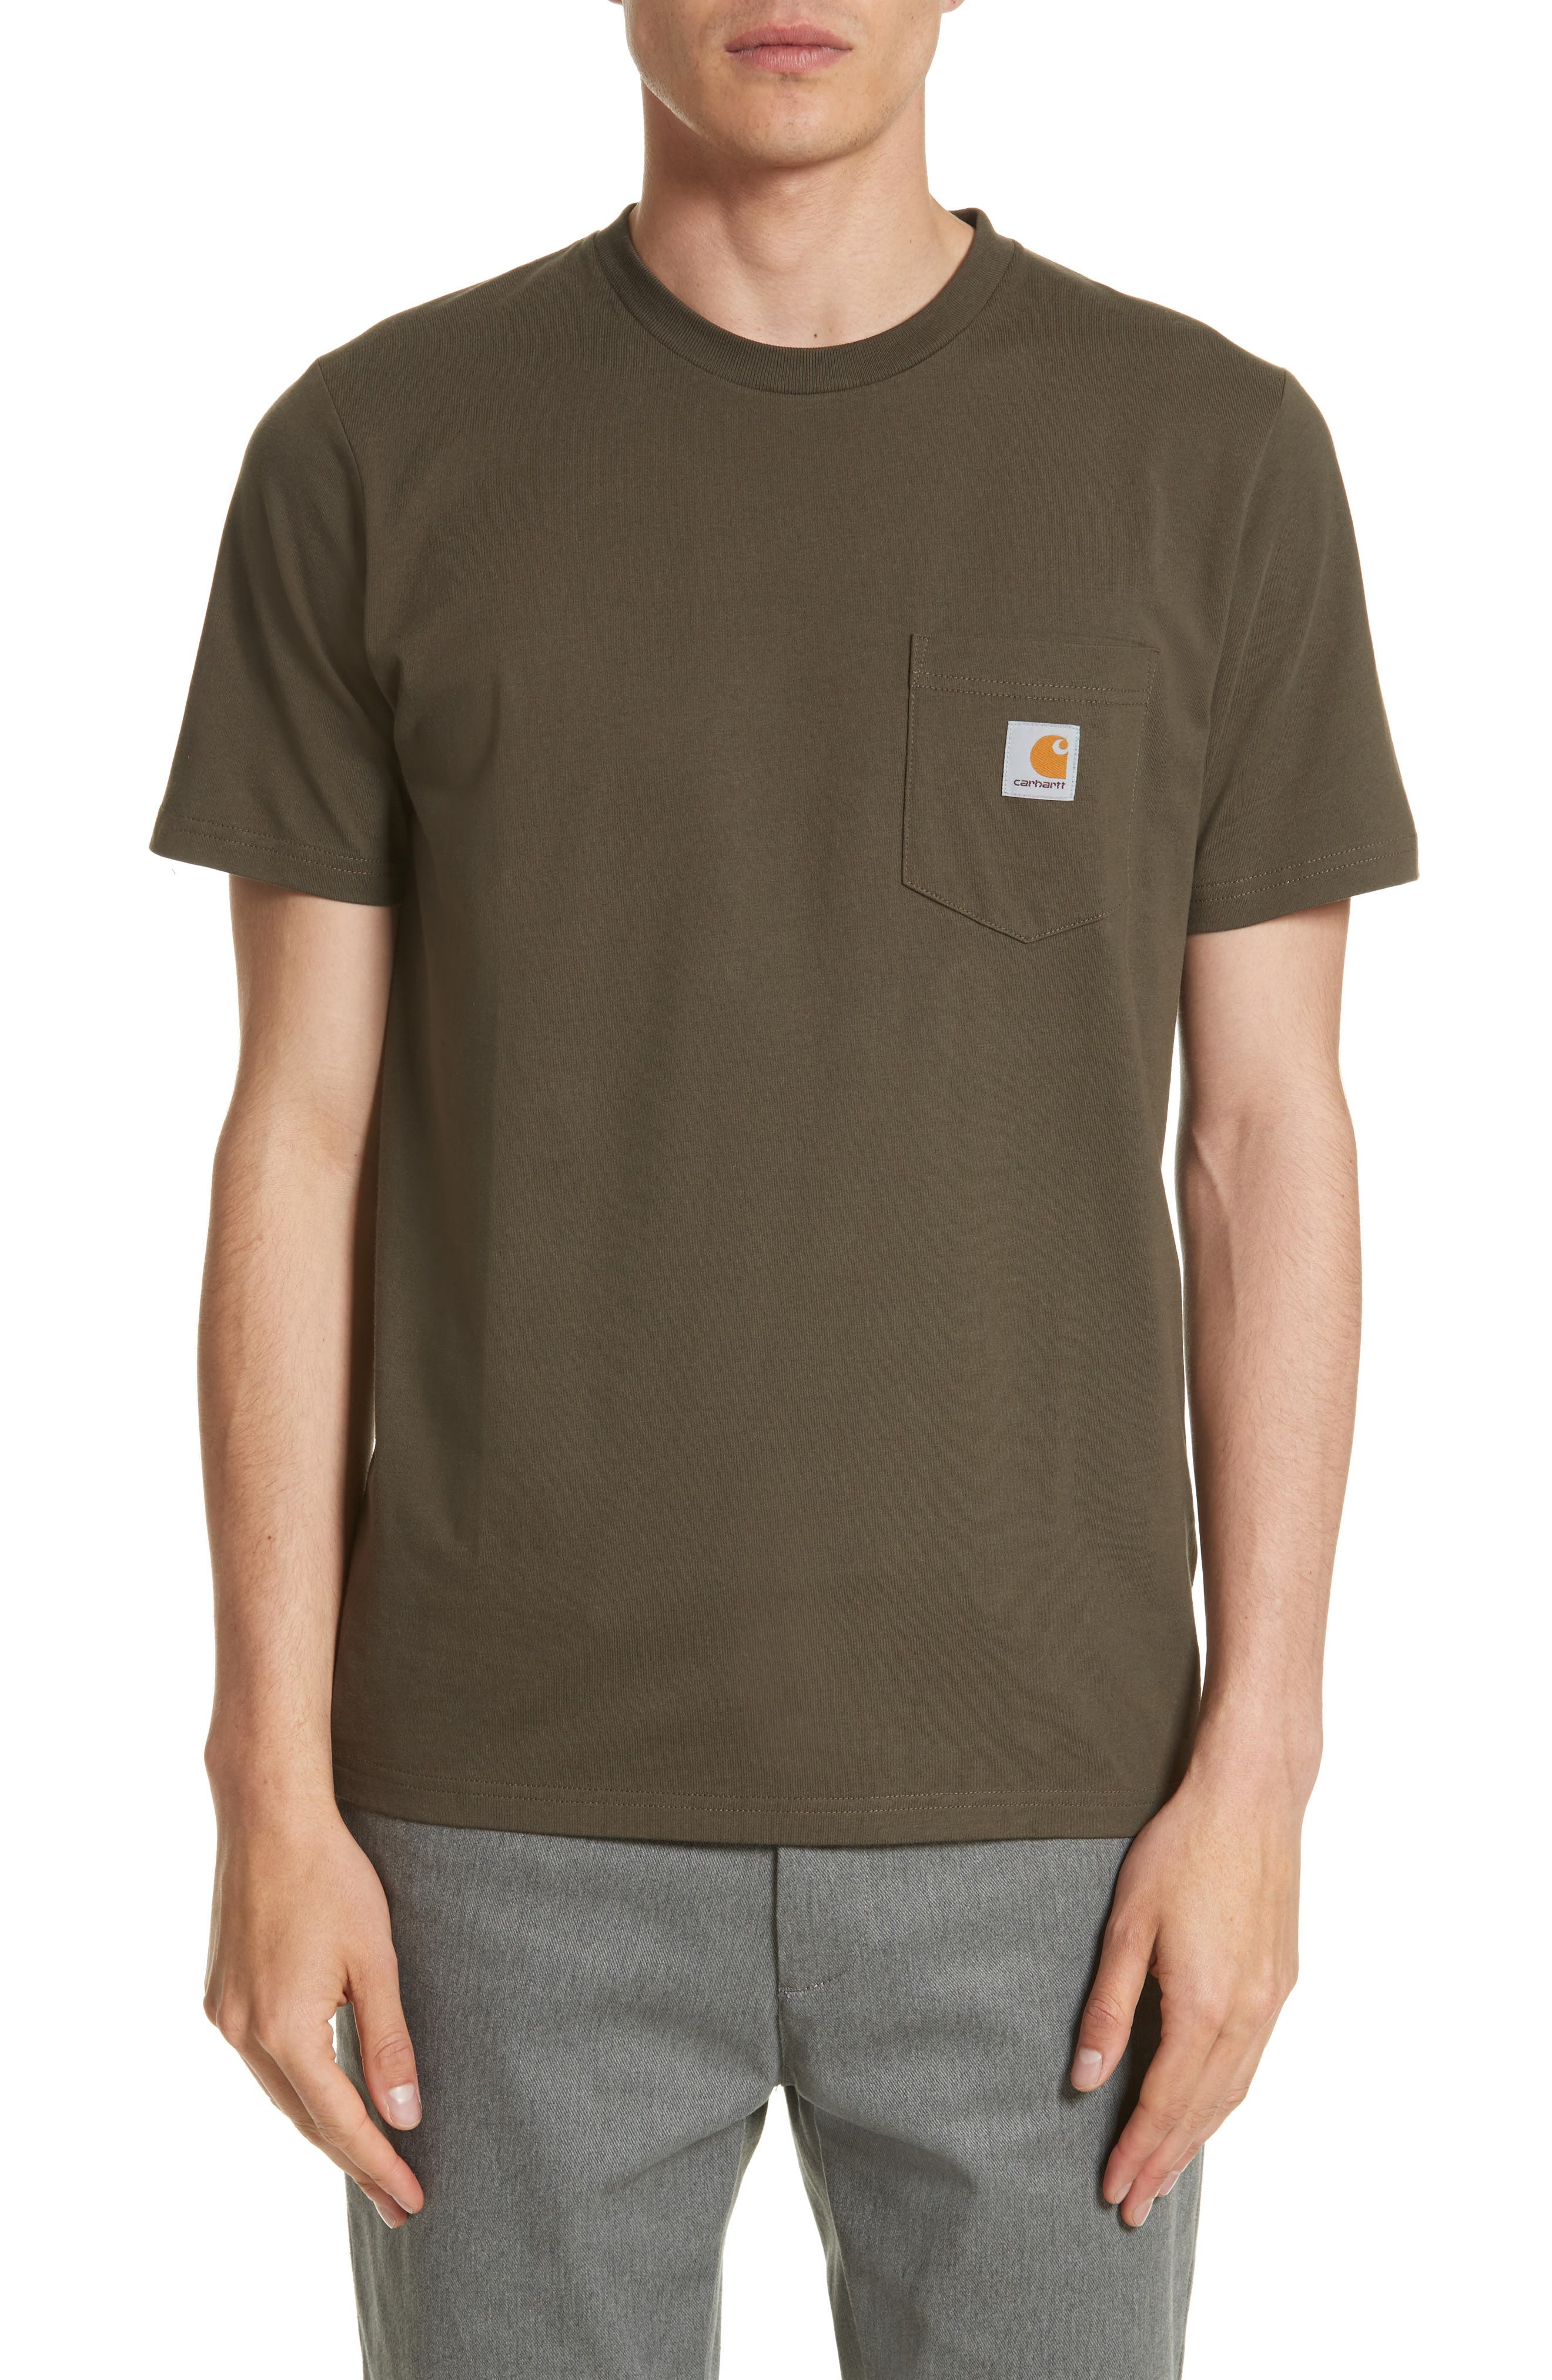 Alternate Image 1 Selected - Carhartt Work in Progress Logo Pocket T-Shirt